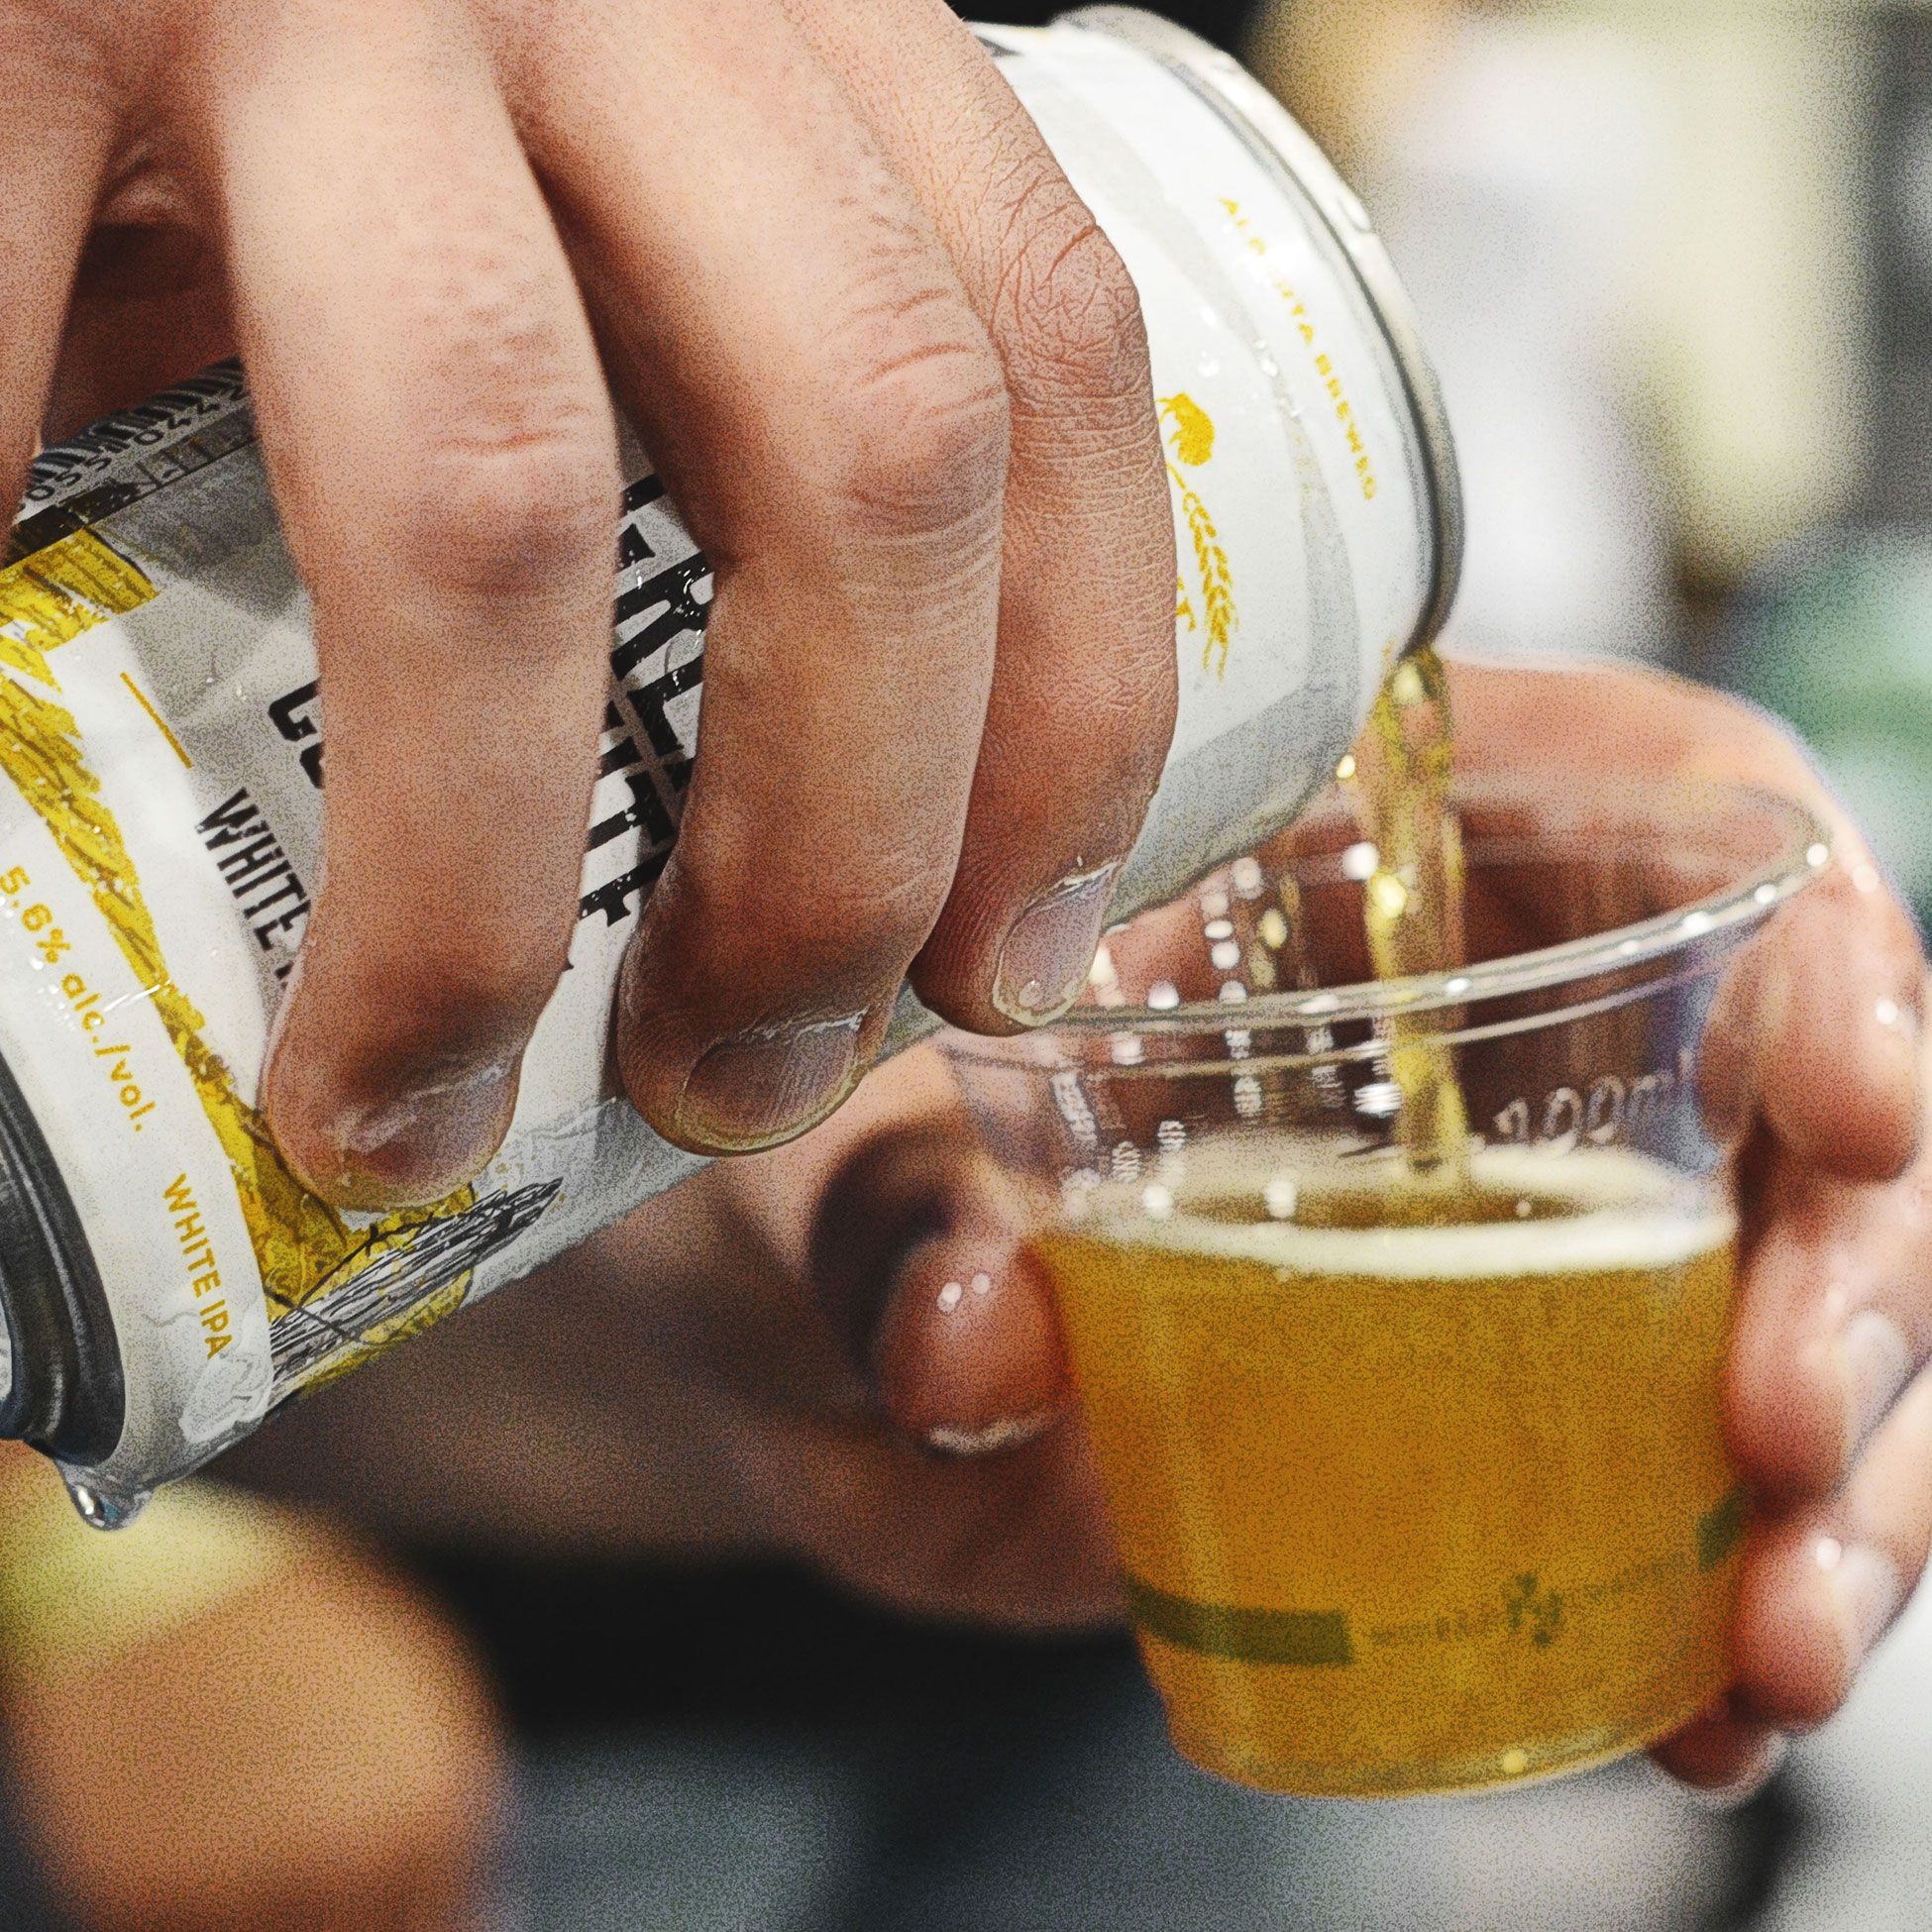 free-images-beer-pouring-creative-commons-cc-commercial-use-beer-can-sample